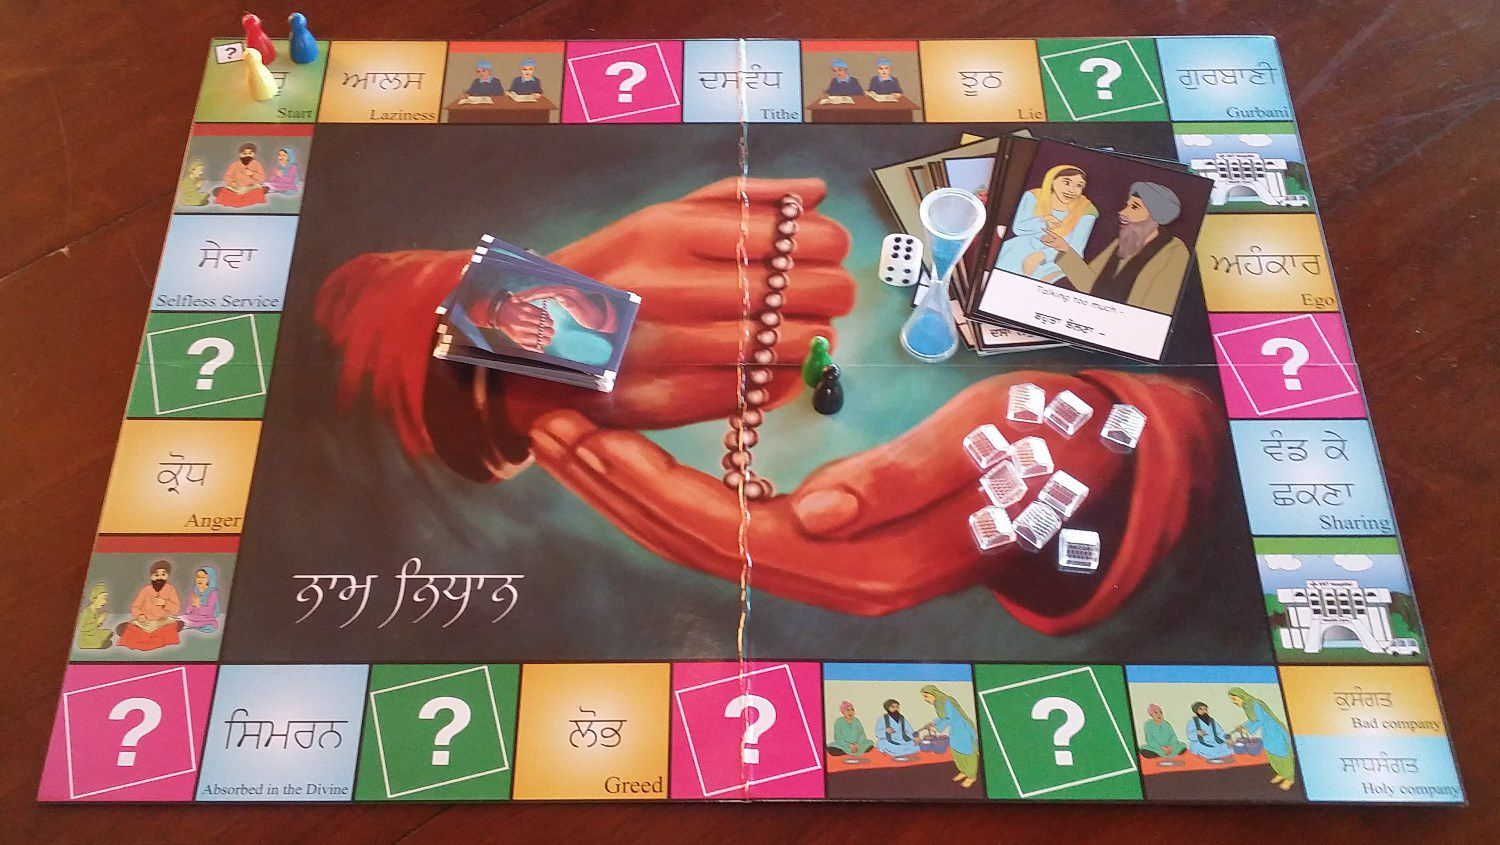 Sikhism Games Puzzles And Activities Resources